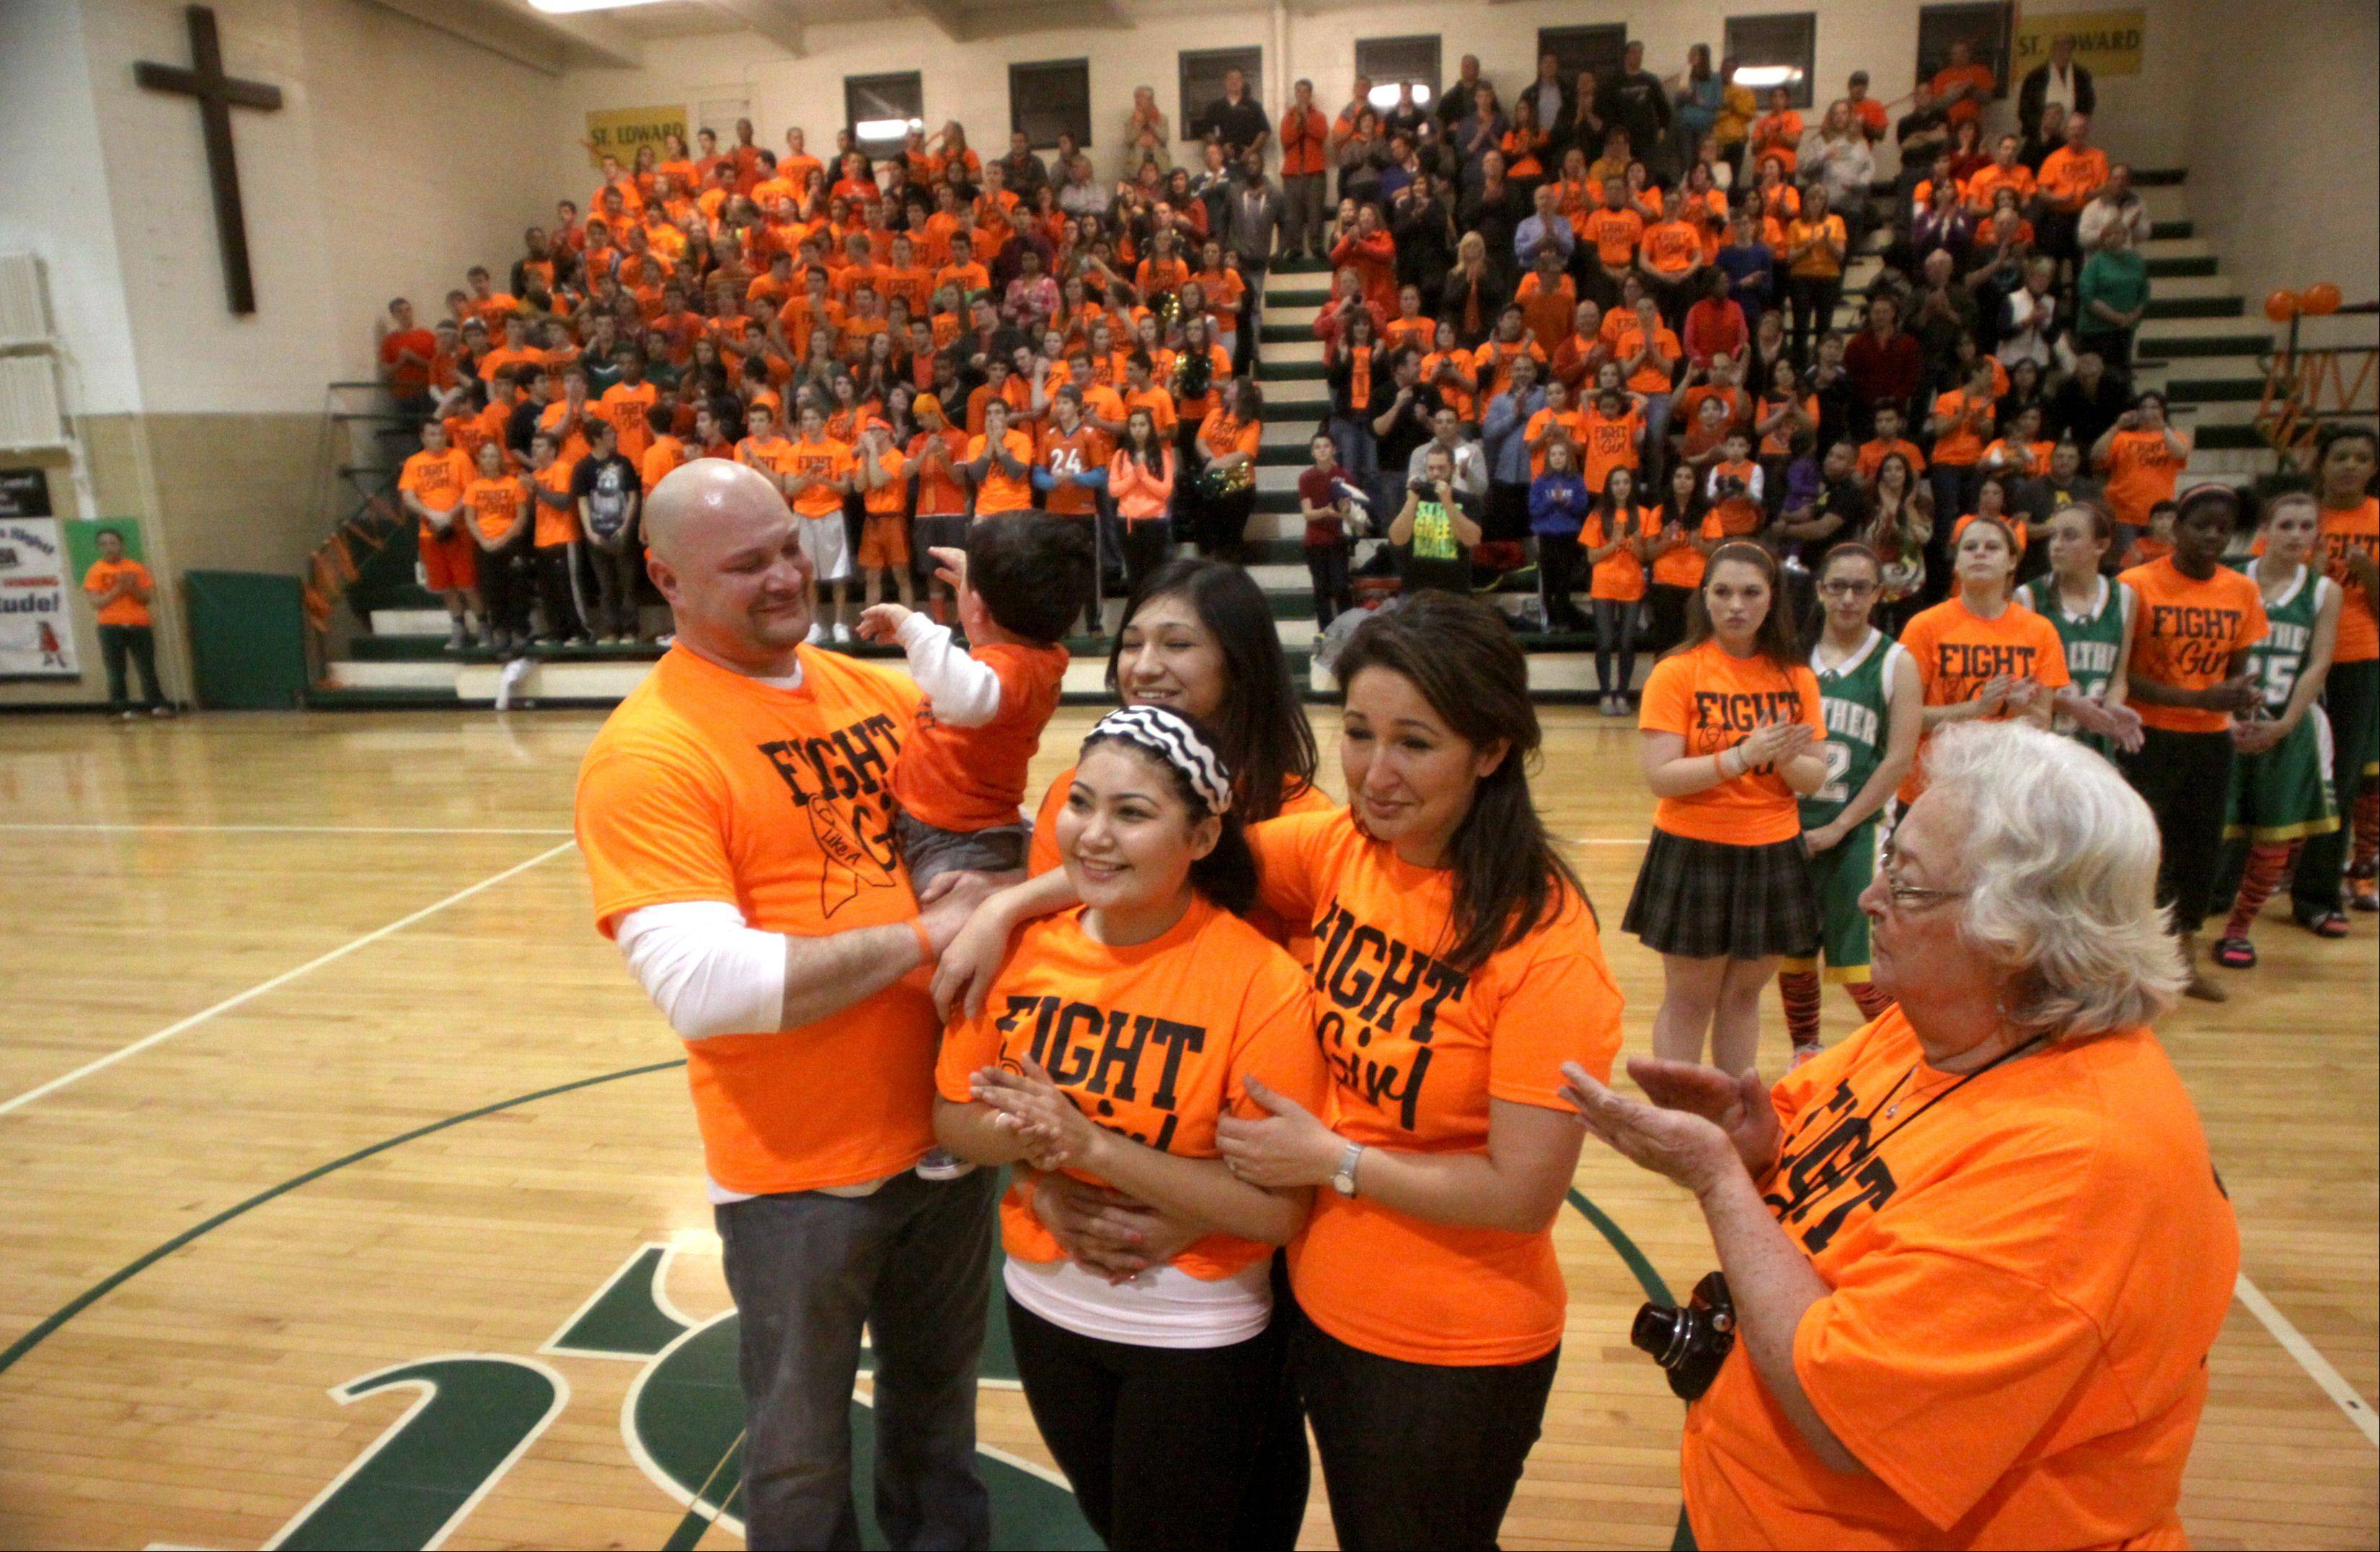 "St. Edward sophomore basketball player Jordan Paz was honored before a varsity contest against Walther Lutheran at Elgin on Thursday night. Paz is undergoing treatment for Leukemia, and school personnel arranged an ""Orange Out Night"" to offer support. Fans donned orange shirts, and team members from both sides formed a receiving line for Paz and her family to enter center court amid cheers and a standing ovation."